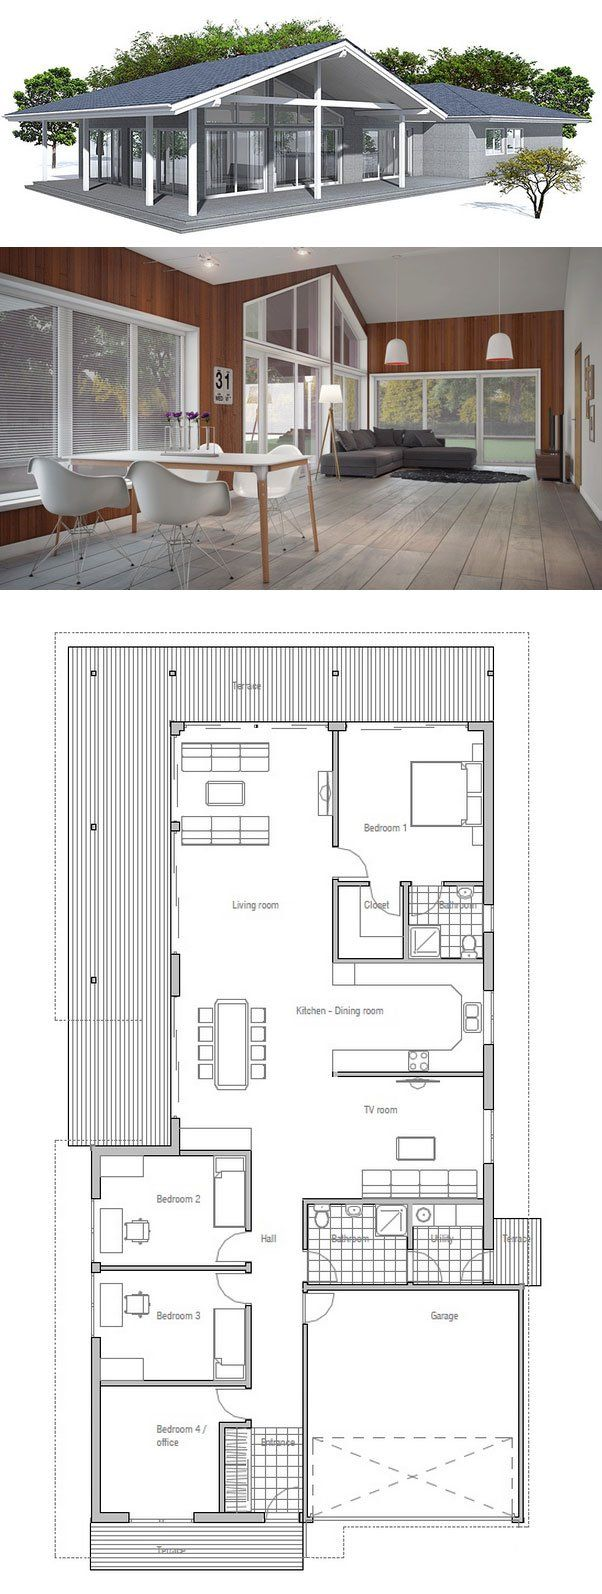 House Plan from ConceptHome.com. Single story home plan.